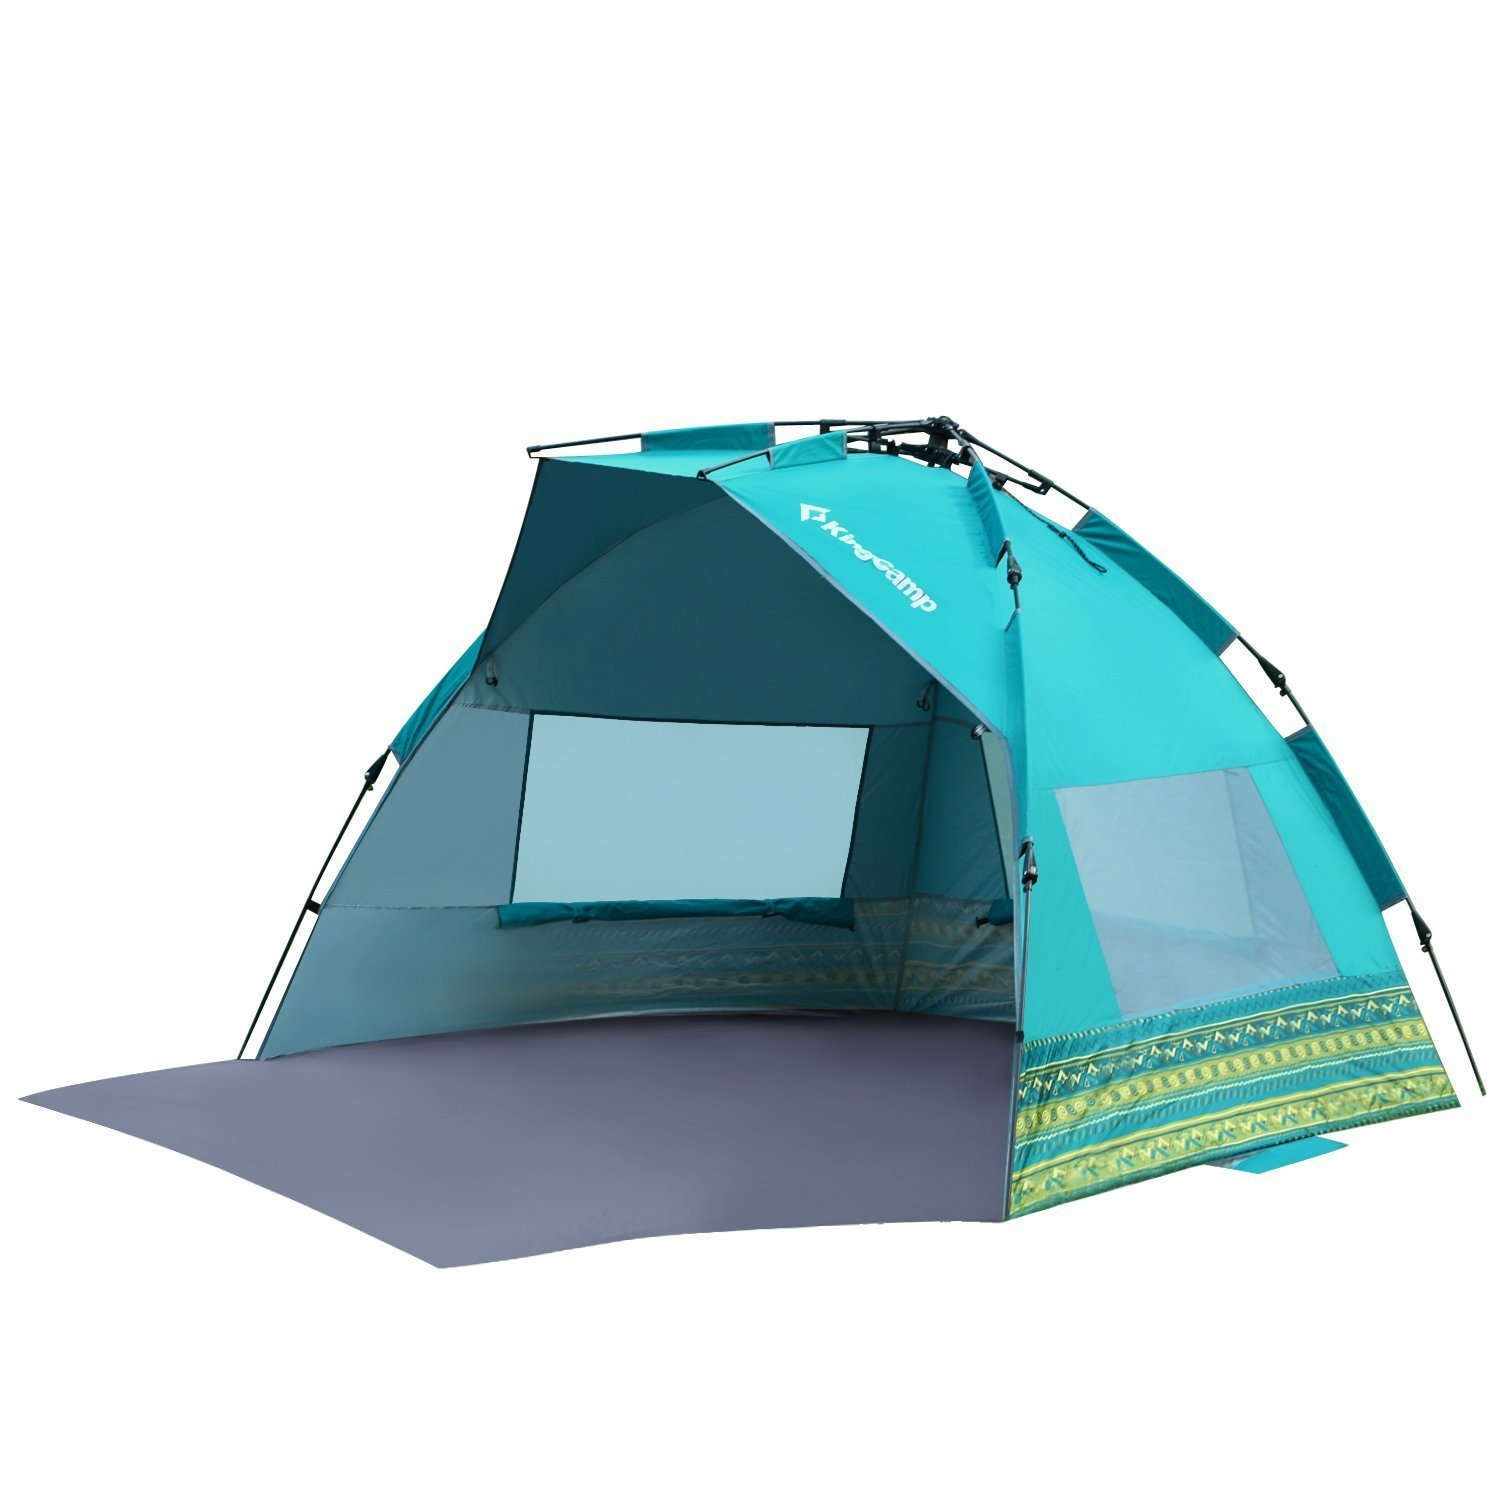 KingC& Beach Tent Sun Shade Shelter Oversize With Extention Floor Privacy Door Semi-closed Structure Portable Easy Set Up Instant UV Protection - Walmart. ...  sc 1 st  Walmart & KingCamp Beach Tent Sun Shade Shelter Oversize With Extention Floor ...